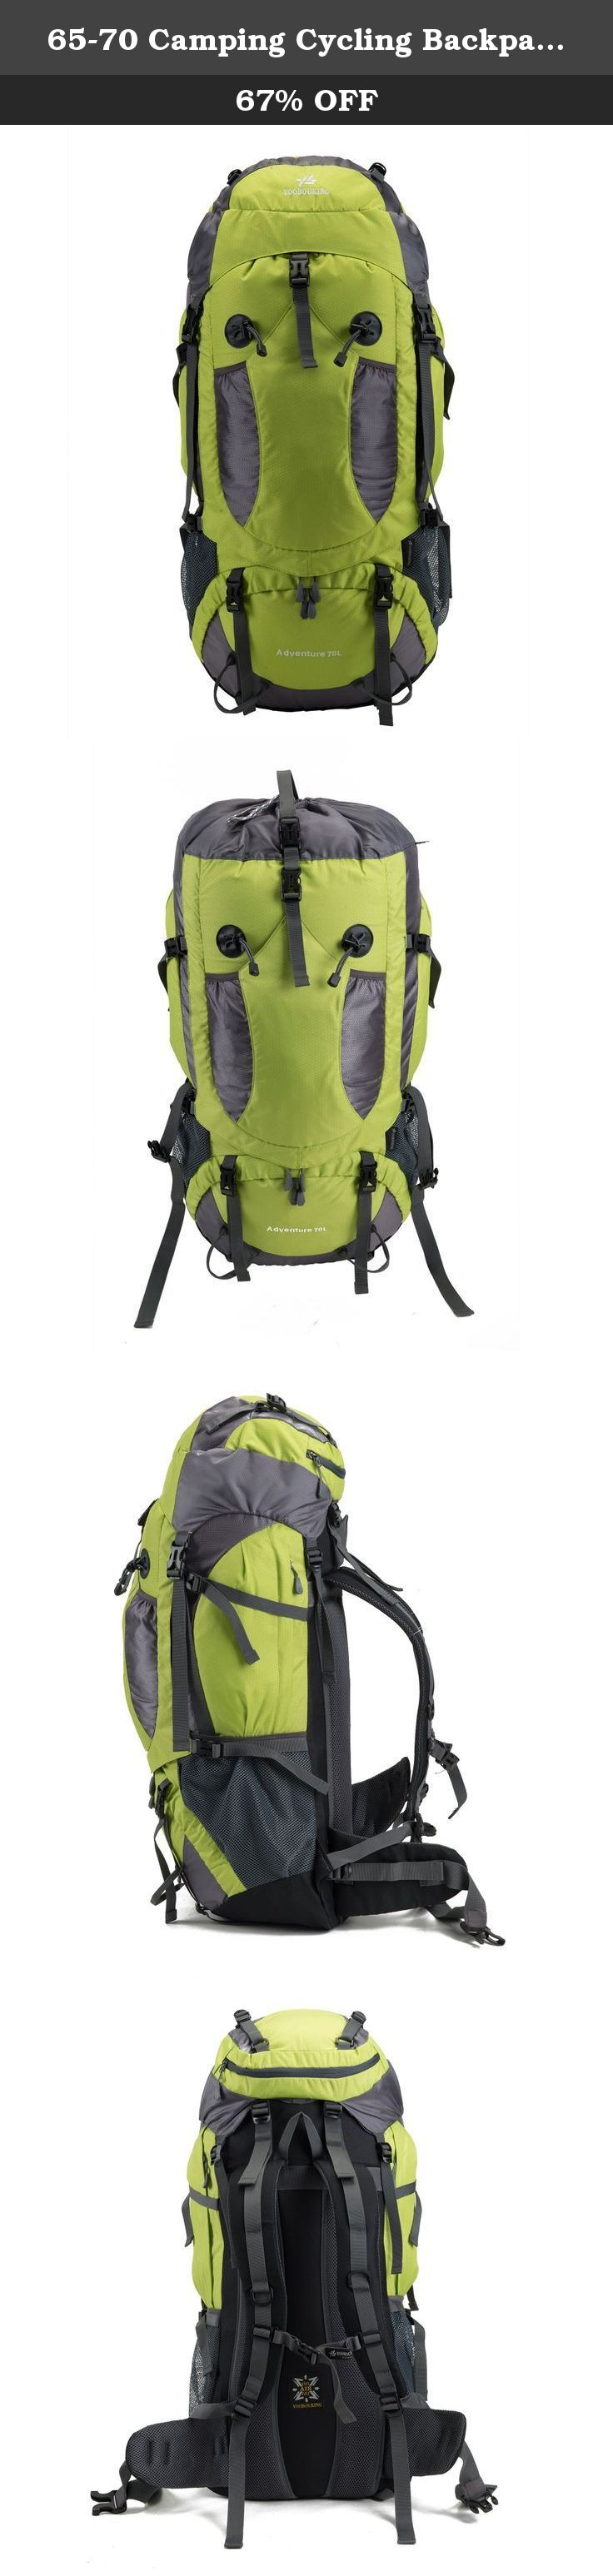 65-70 Camping Cycling Backpack Travel Backpack Trekking Hiking Daypackk Waterproof Durable for Outdoor Backpack Climbing Mountaineering Backpack. Department: Unisex Structure 1.Exterior: One zippered front pockets, One Buckle pockets, With cover,dual-zipper,There are zygomorphous mesh bag. 2.Interior: One open pocket. 3.Fabric: Water-resistant rip-stop Nylon. Features 4.Durable 2-way Abrasion Resistant SBS Metal Zipper across the backpack. 5.3D honeycomb breathable mesh and high…